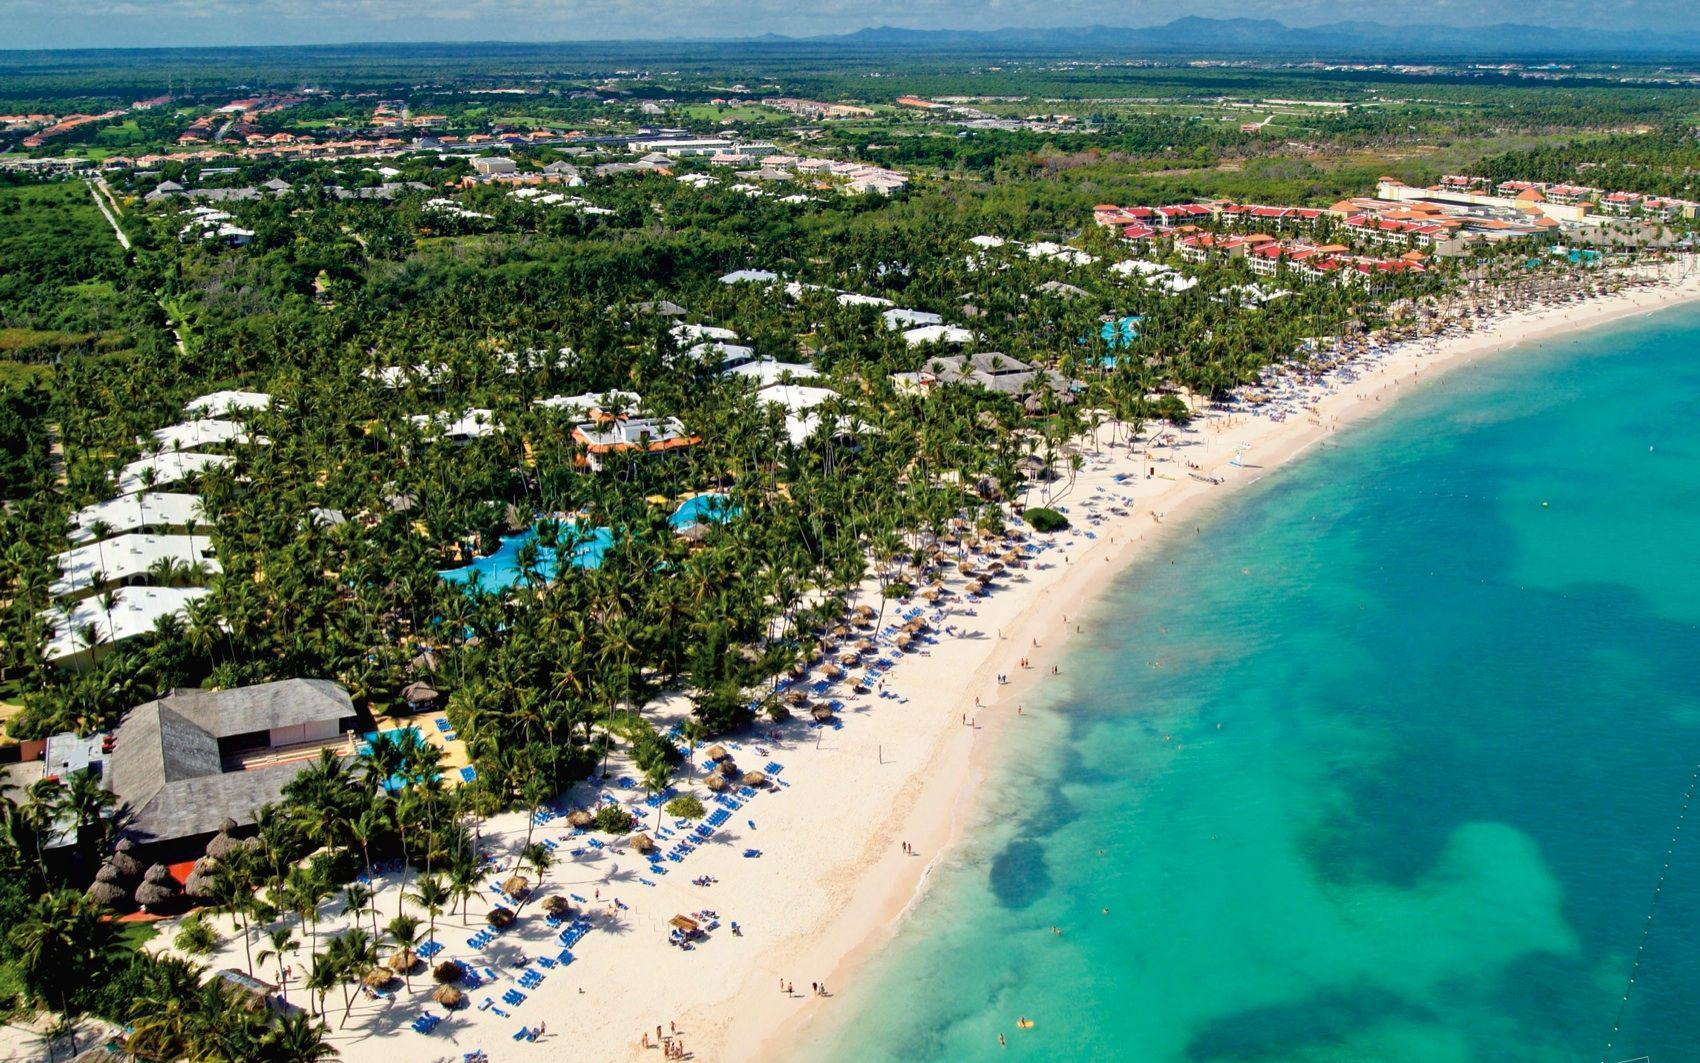 Meliá Caribe Tropical, all inclusive vacations